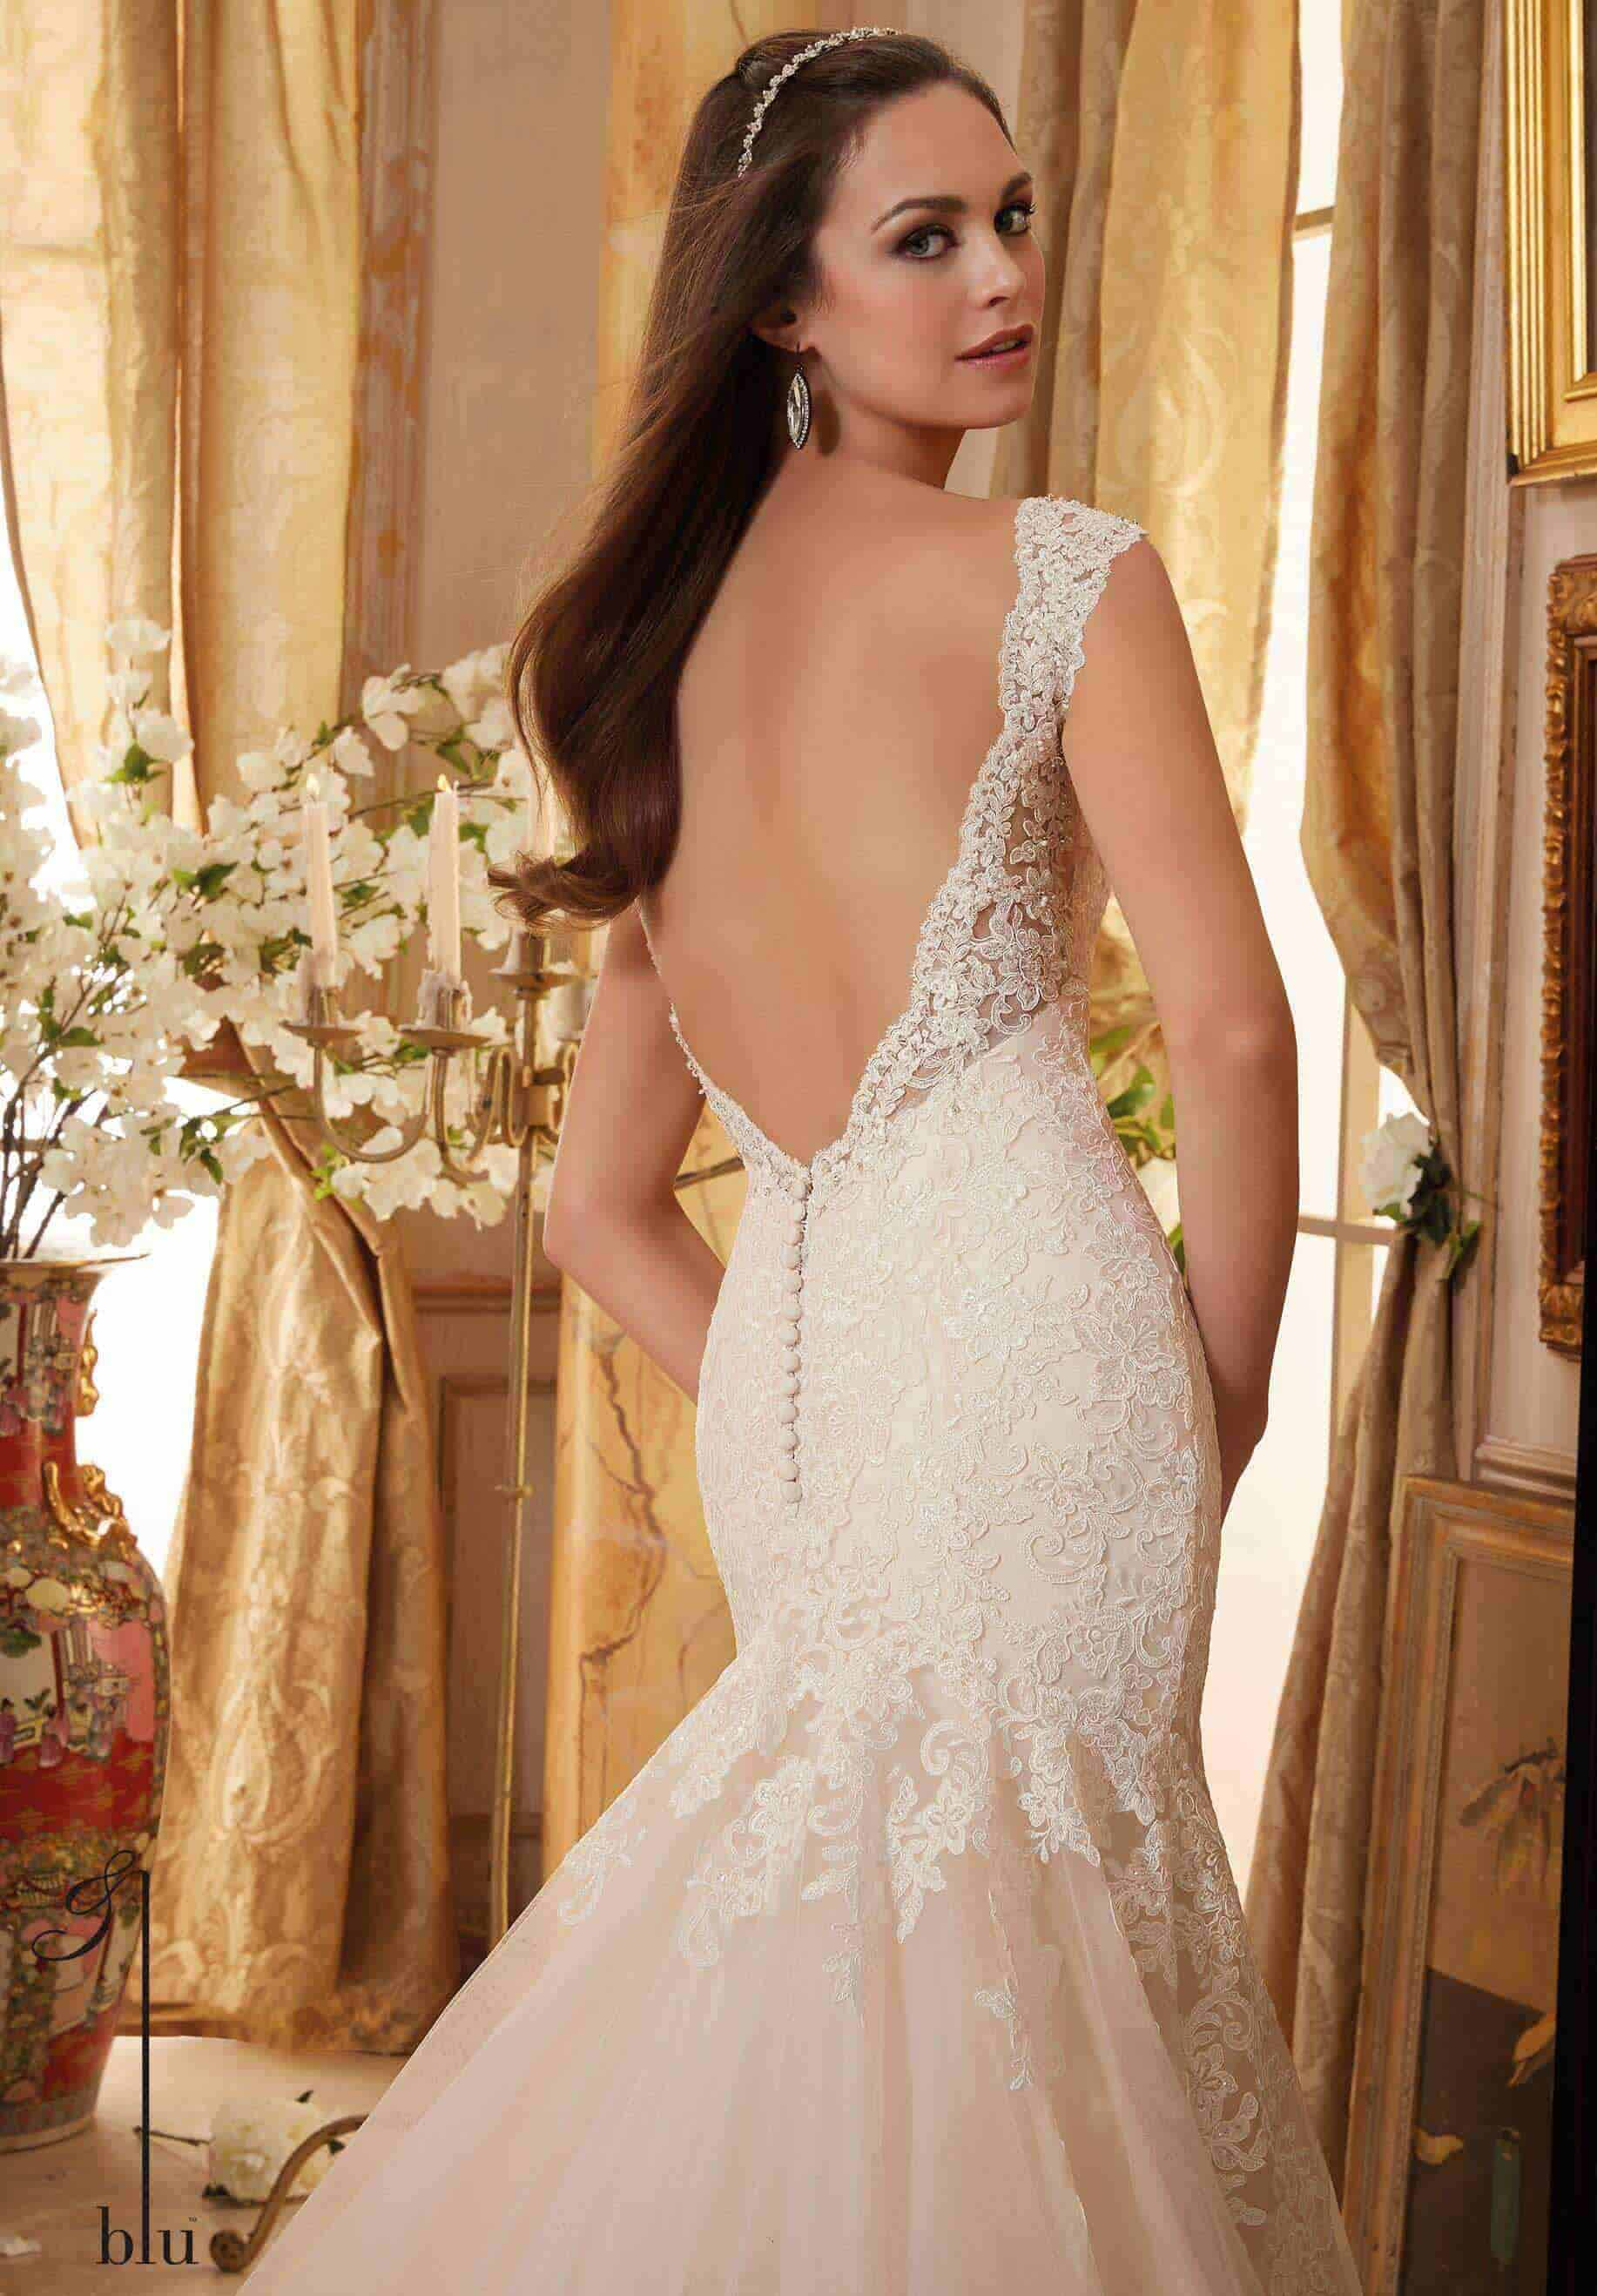 Amazing back detailed wedding dress